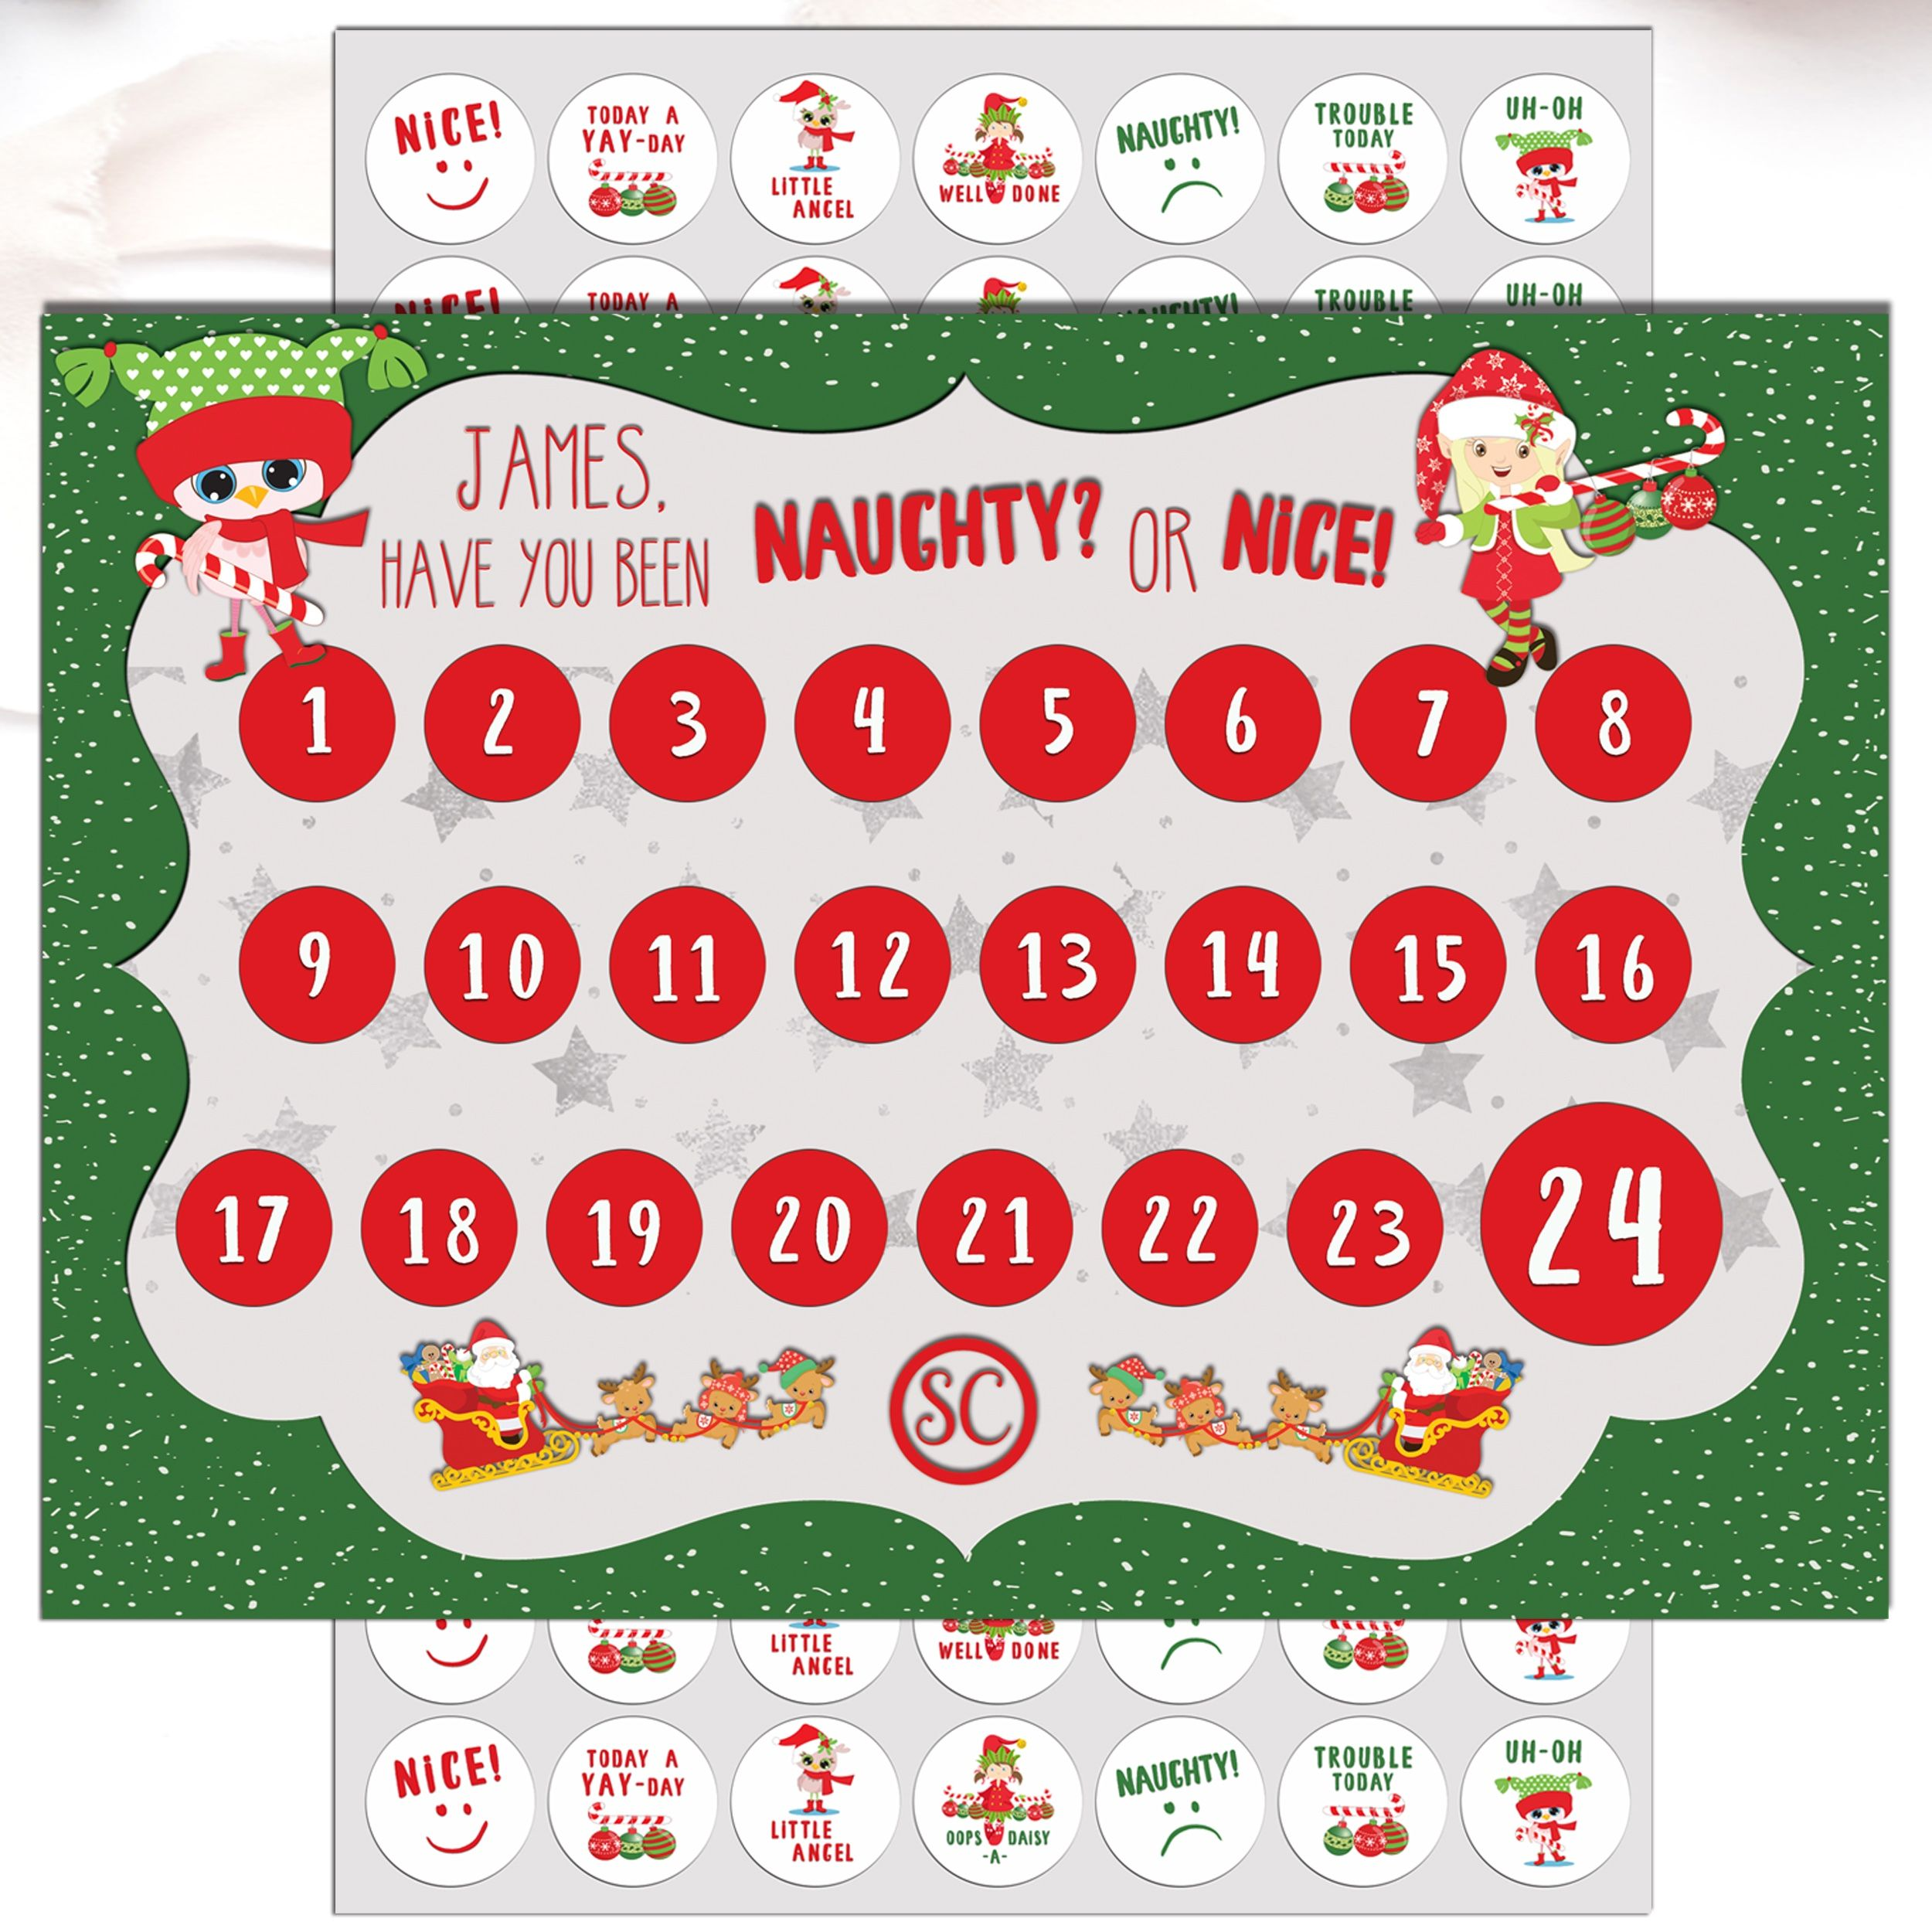 A Great Fun Countdown To Christmas Have You Been Naughty Or Nice